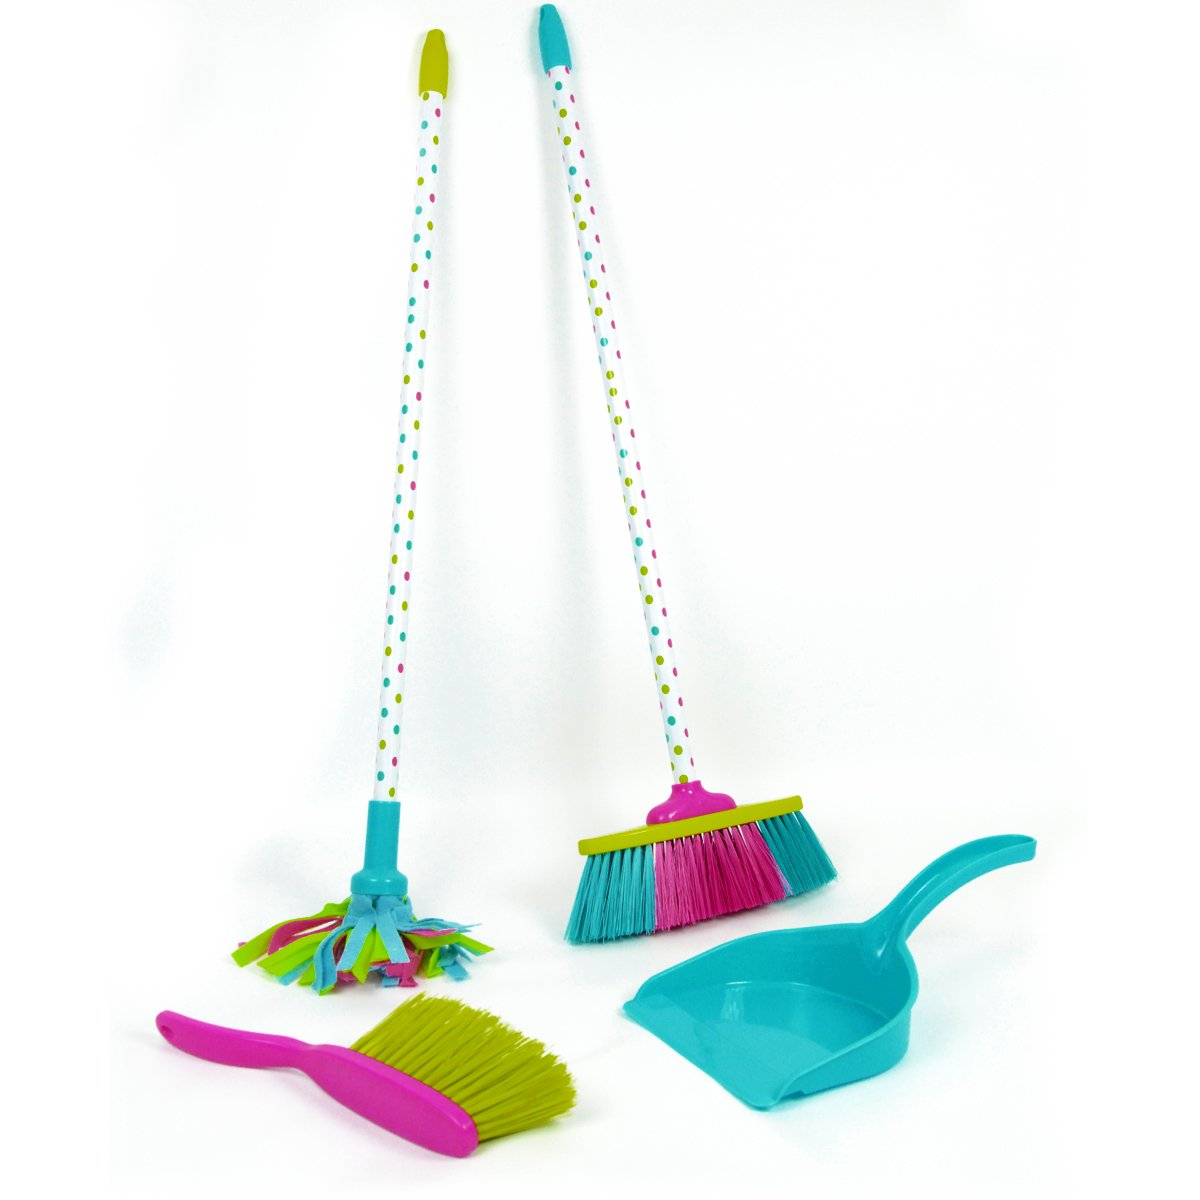 Kids Cleaning Set Includes Broom Mop Dustpan And